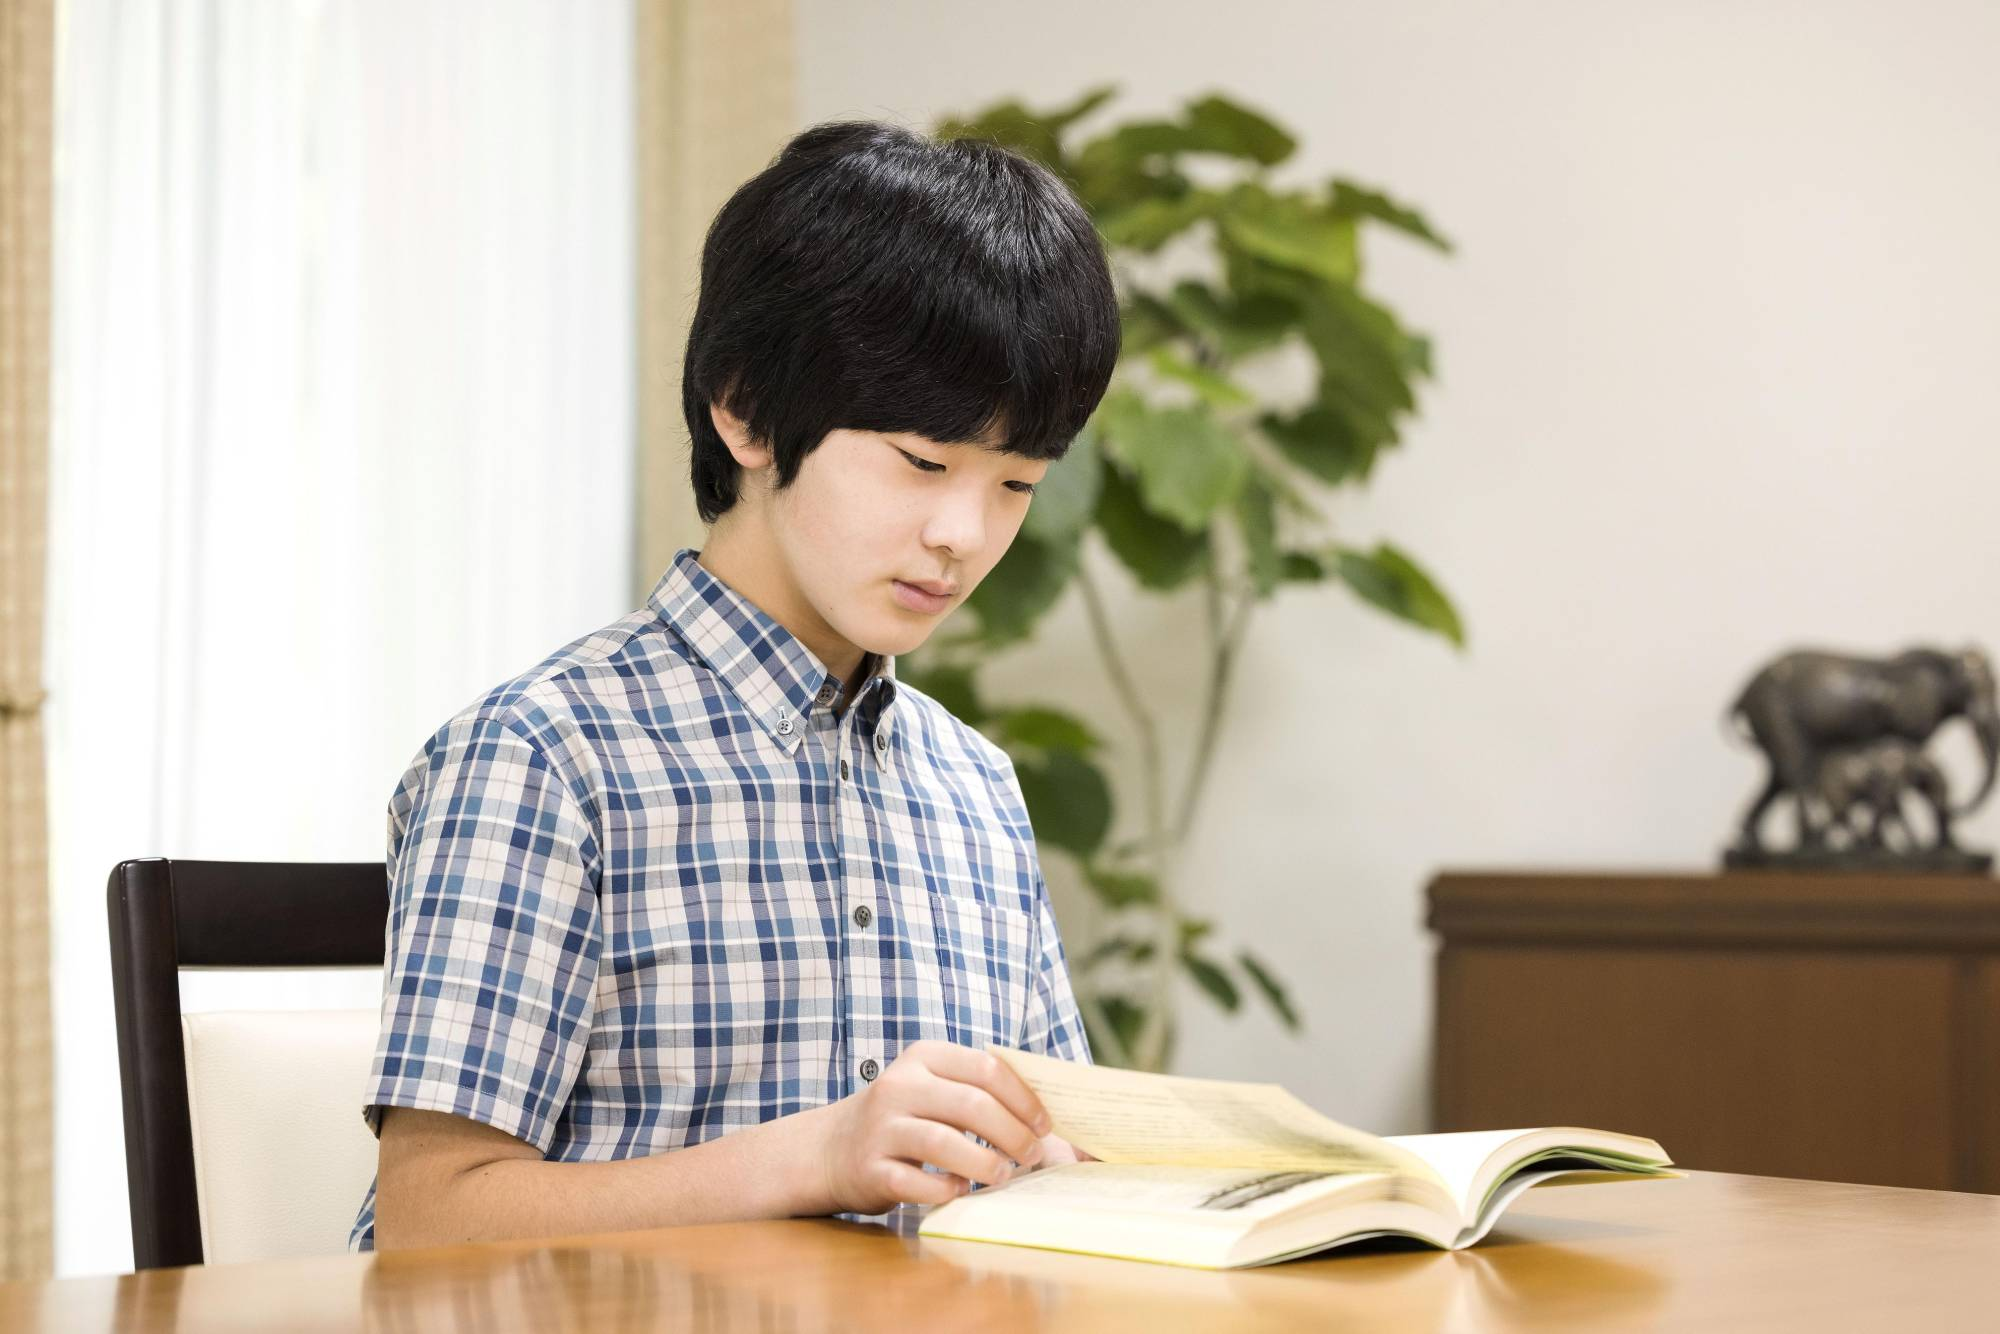 Prince Hisahito, who turned 15 on Monday, is pictured at his residence in Tokyo on Aug. 5.   IMPERIAL HOUSEHOLD AGENCY / VIA KYODO